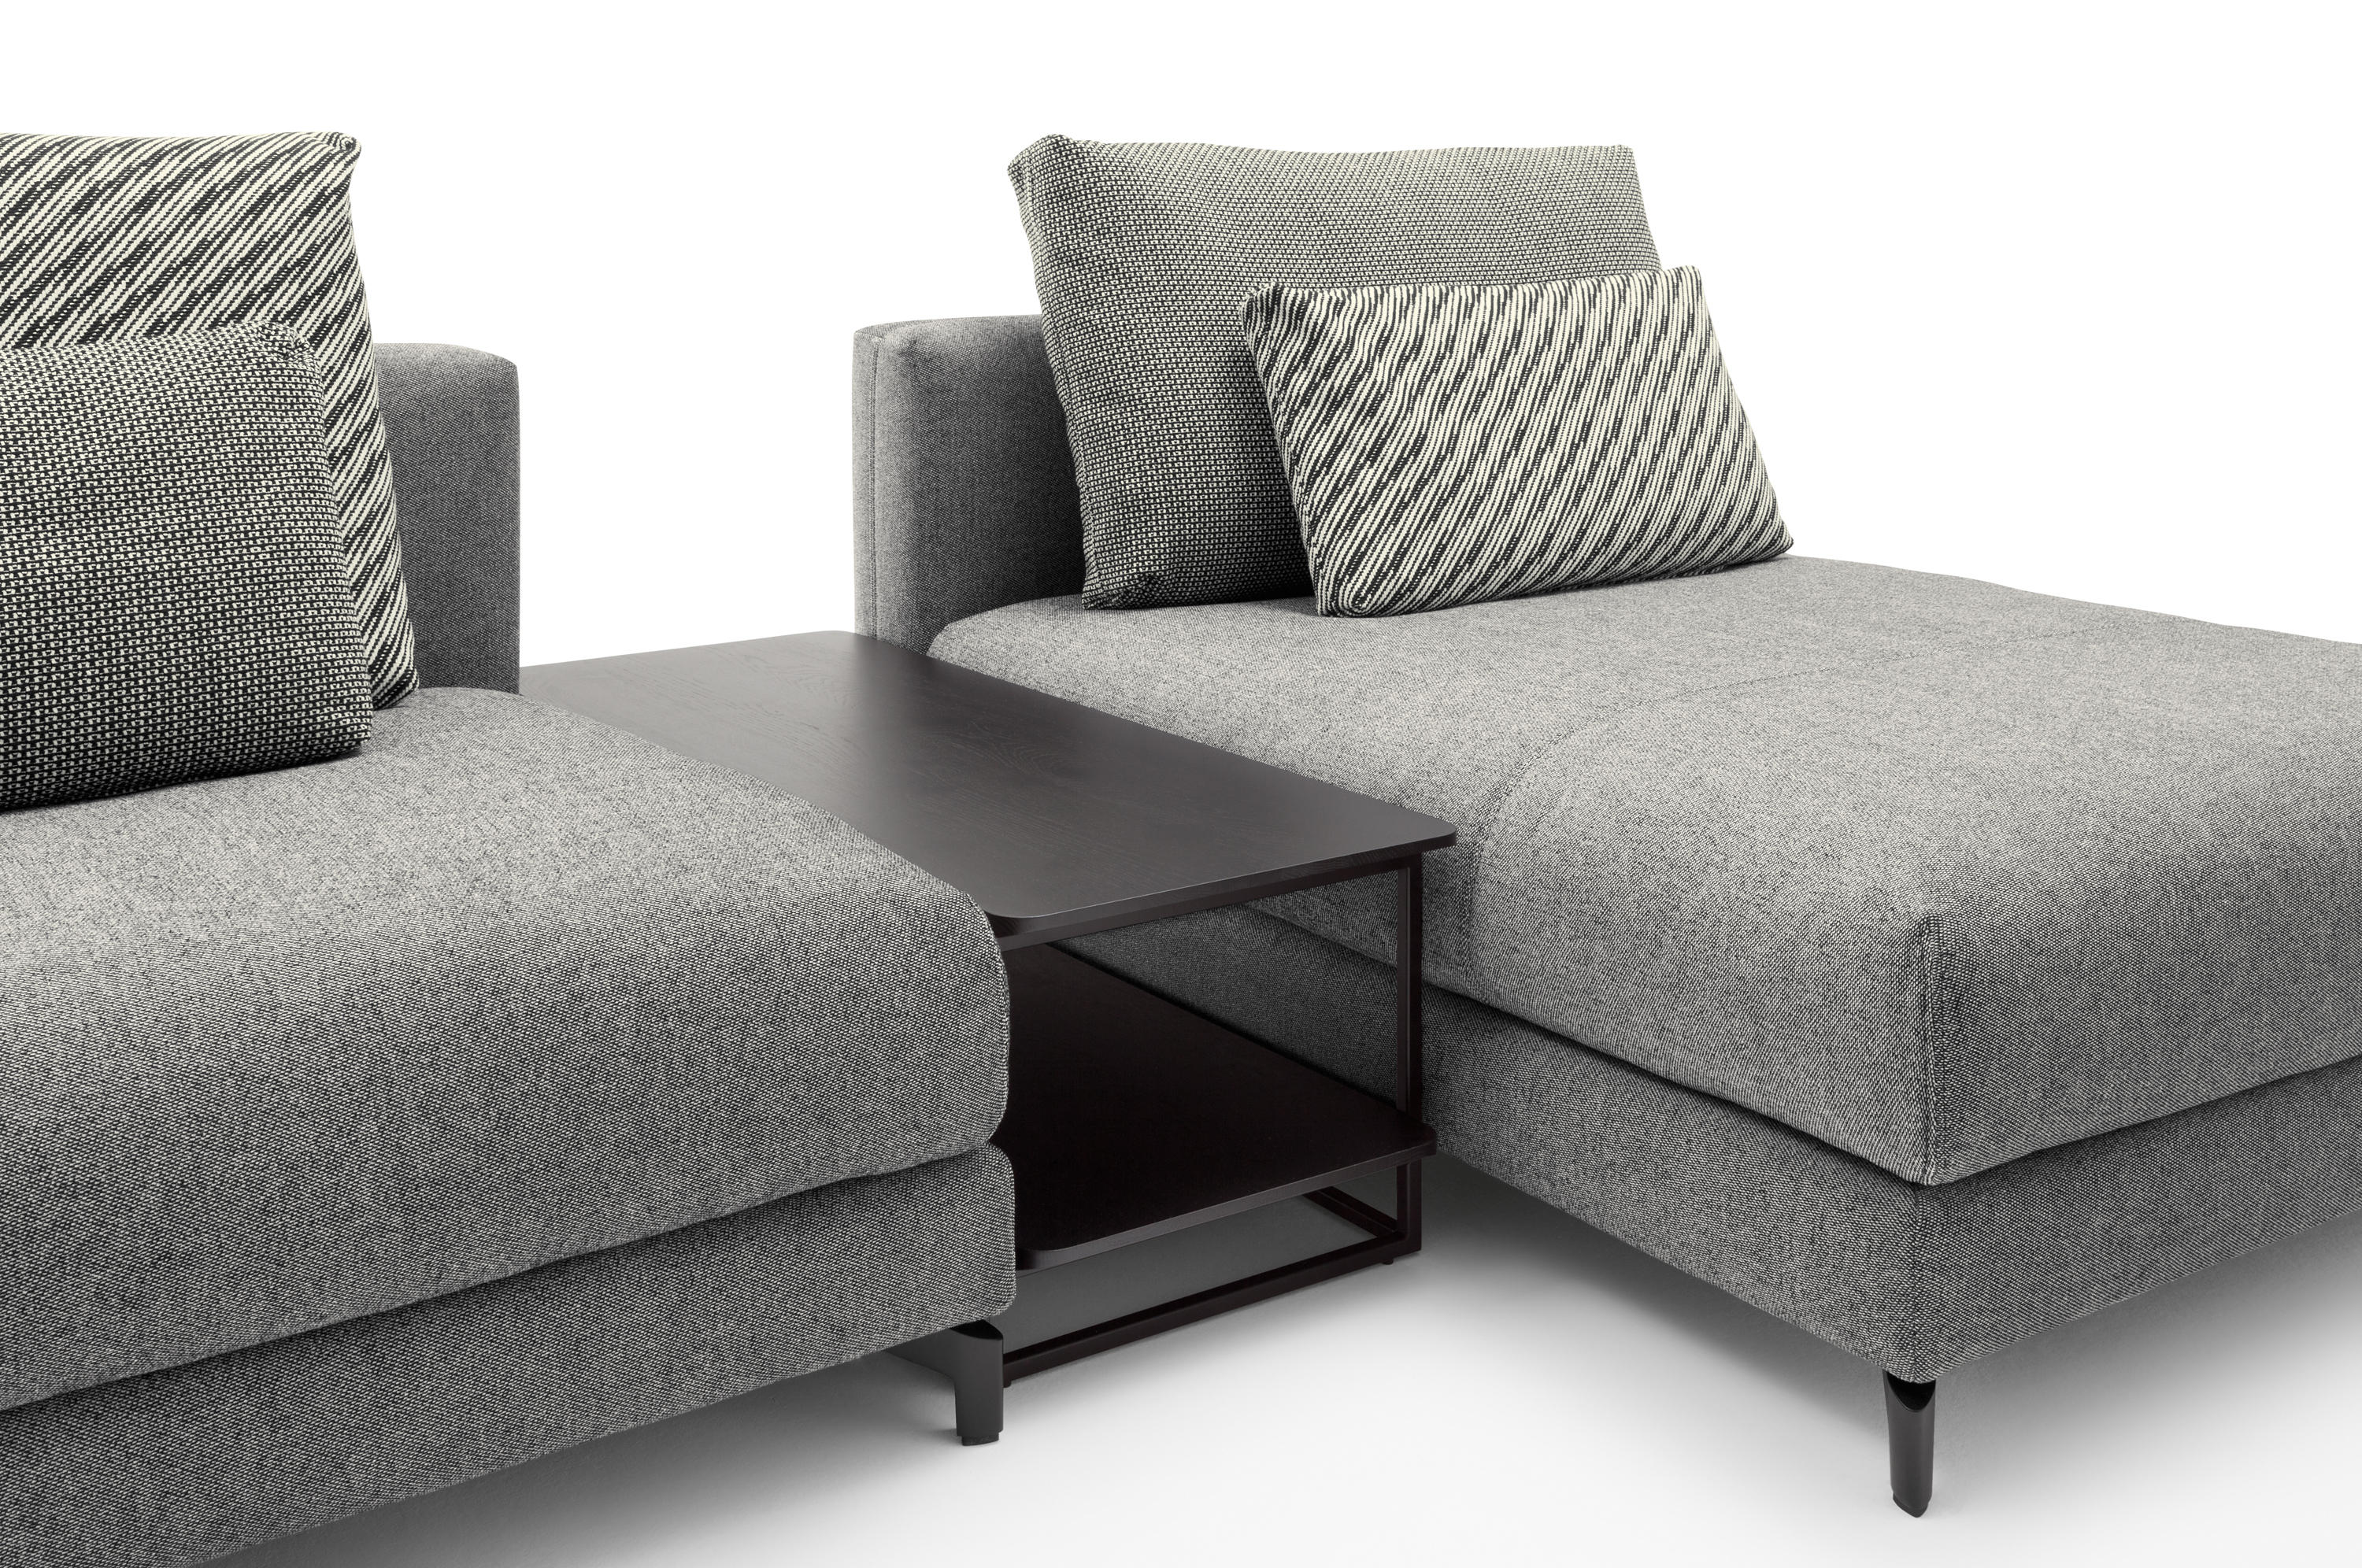 rolf benz nuvola modular seating systems from rolf benz. Black Bedroom Furniture Sets. Home Design Ideas